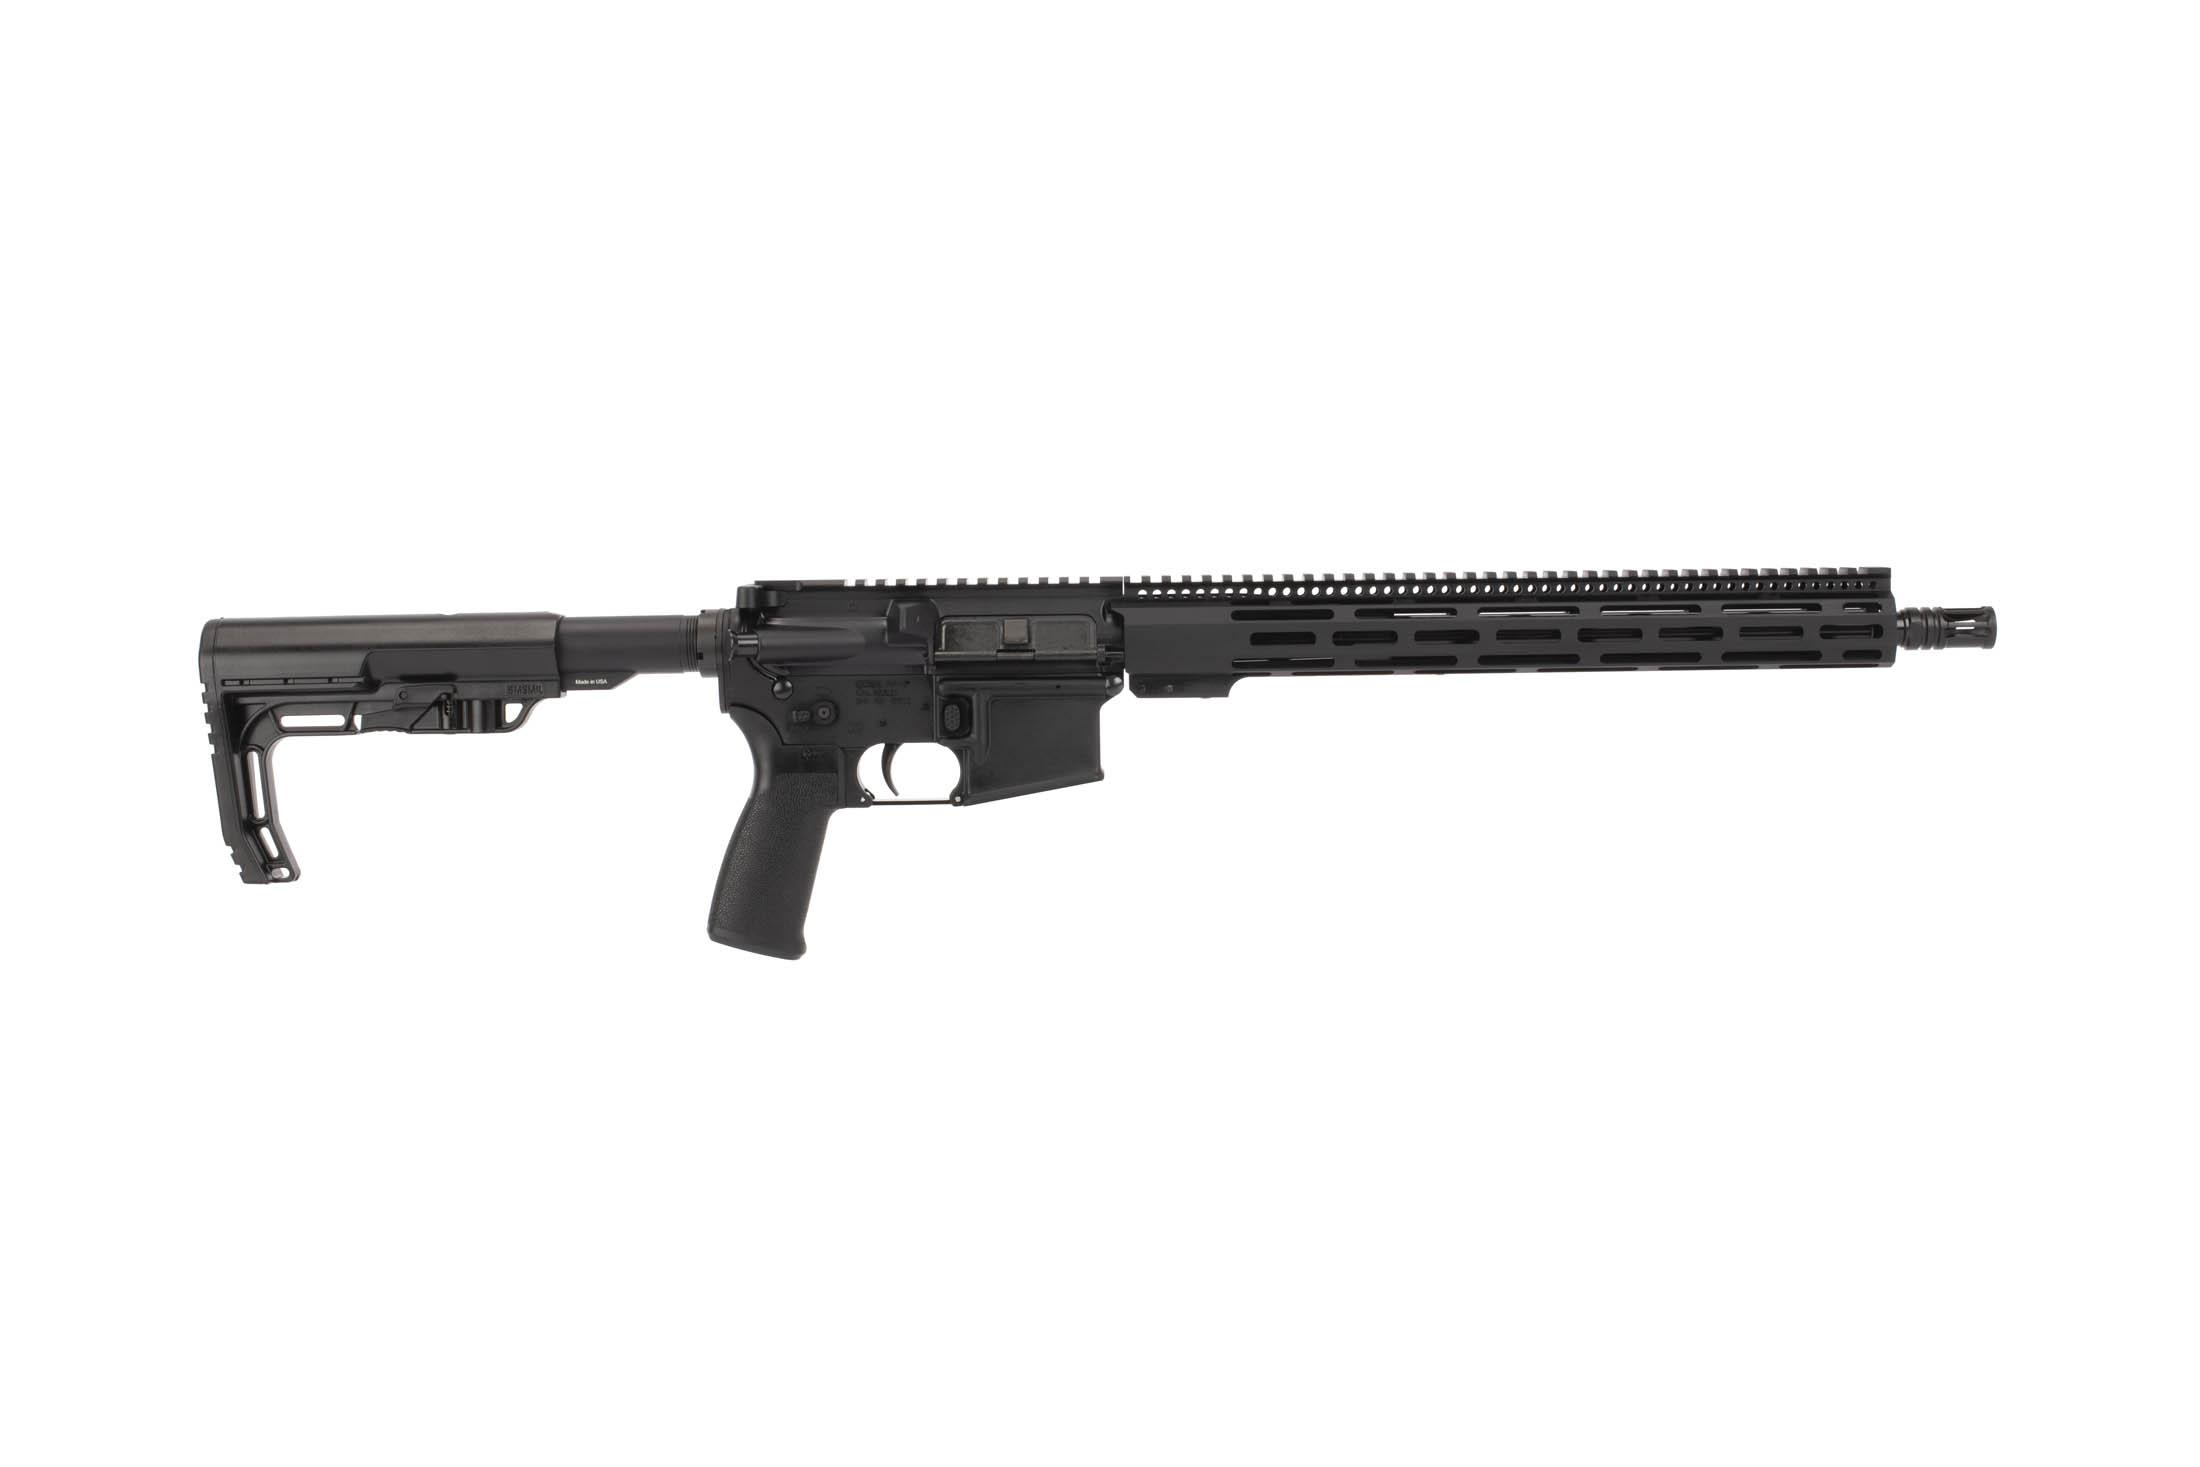 Radical Firearms 16in 300BLK AR-15 rifle with M-LOK handguard, Mission First Tactical pistol grip, and minimalist stock